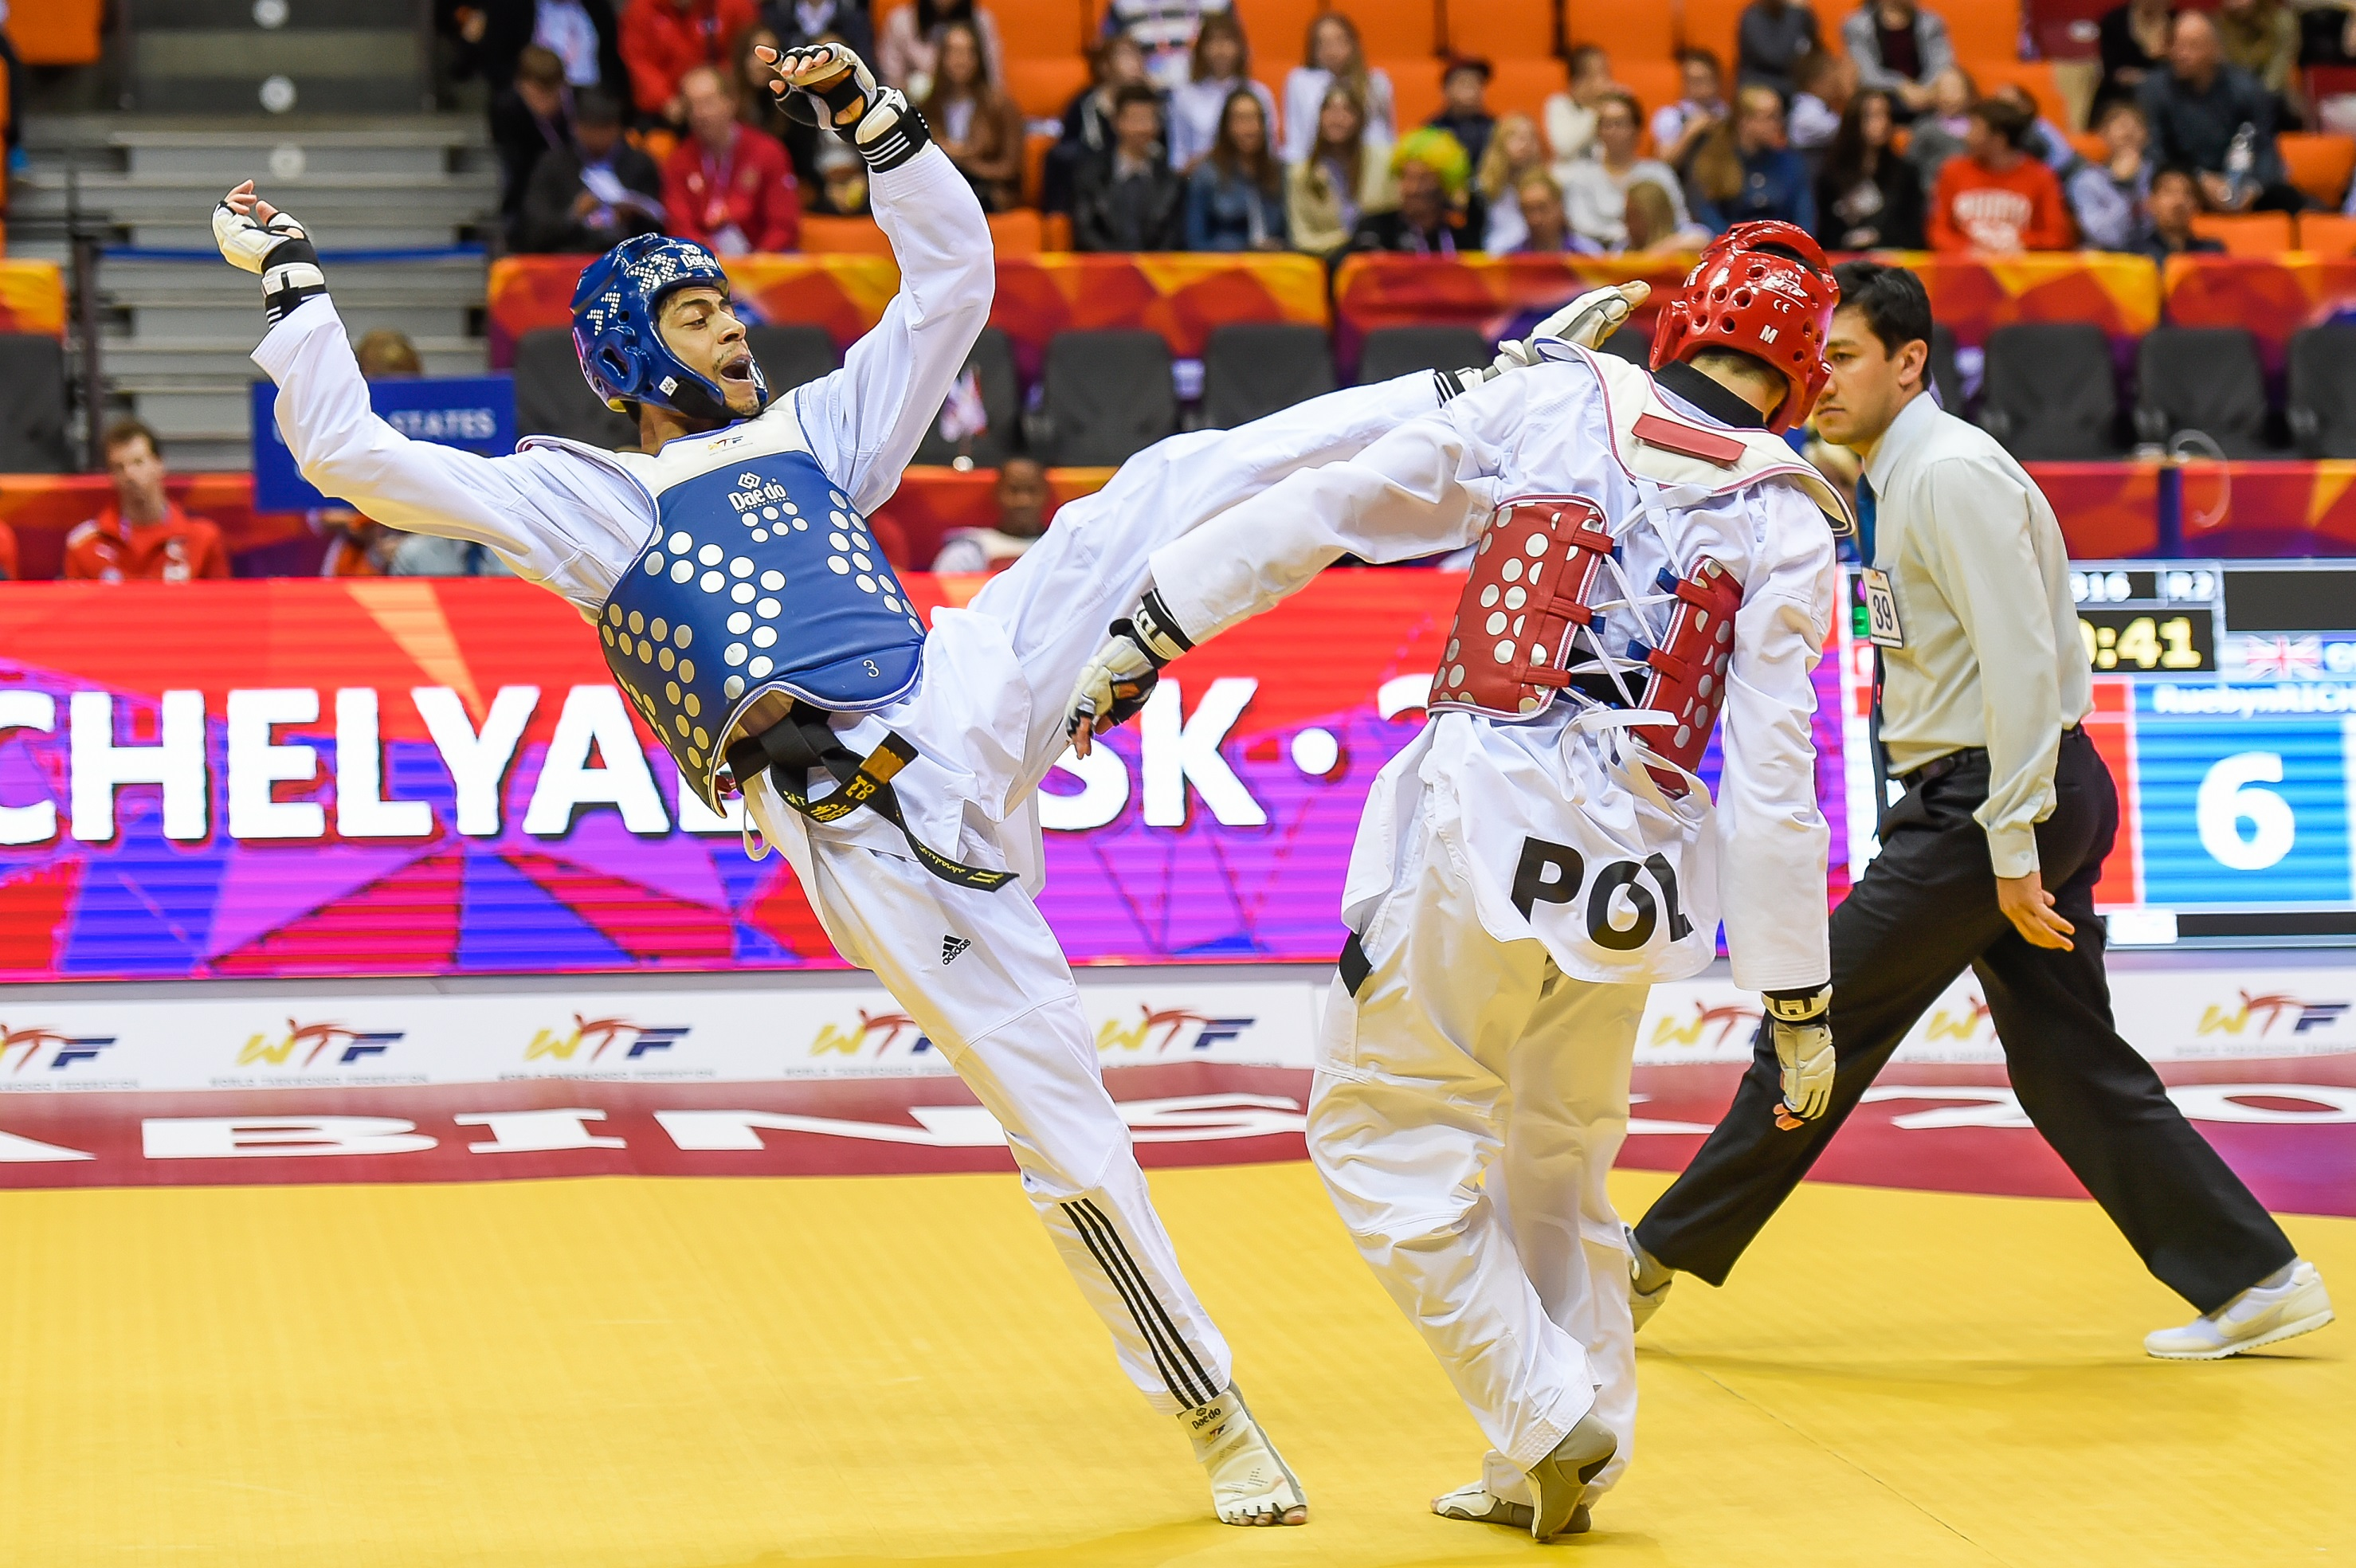 Ruebyn Richards, World Taekwondo Championships 2015 140515 rights free courtesy of GB Taekwondo (2)